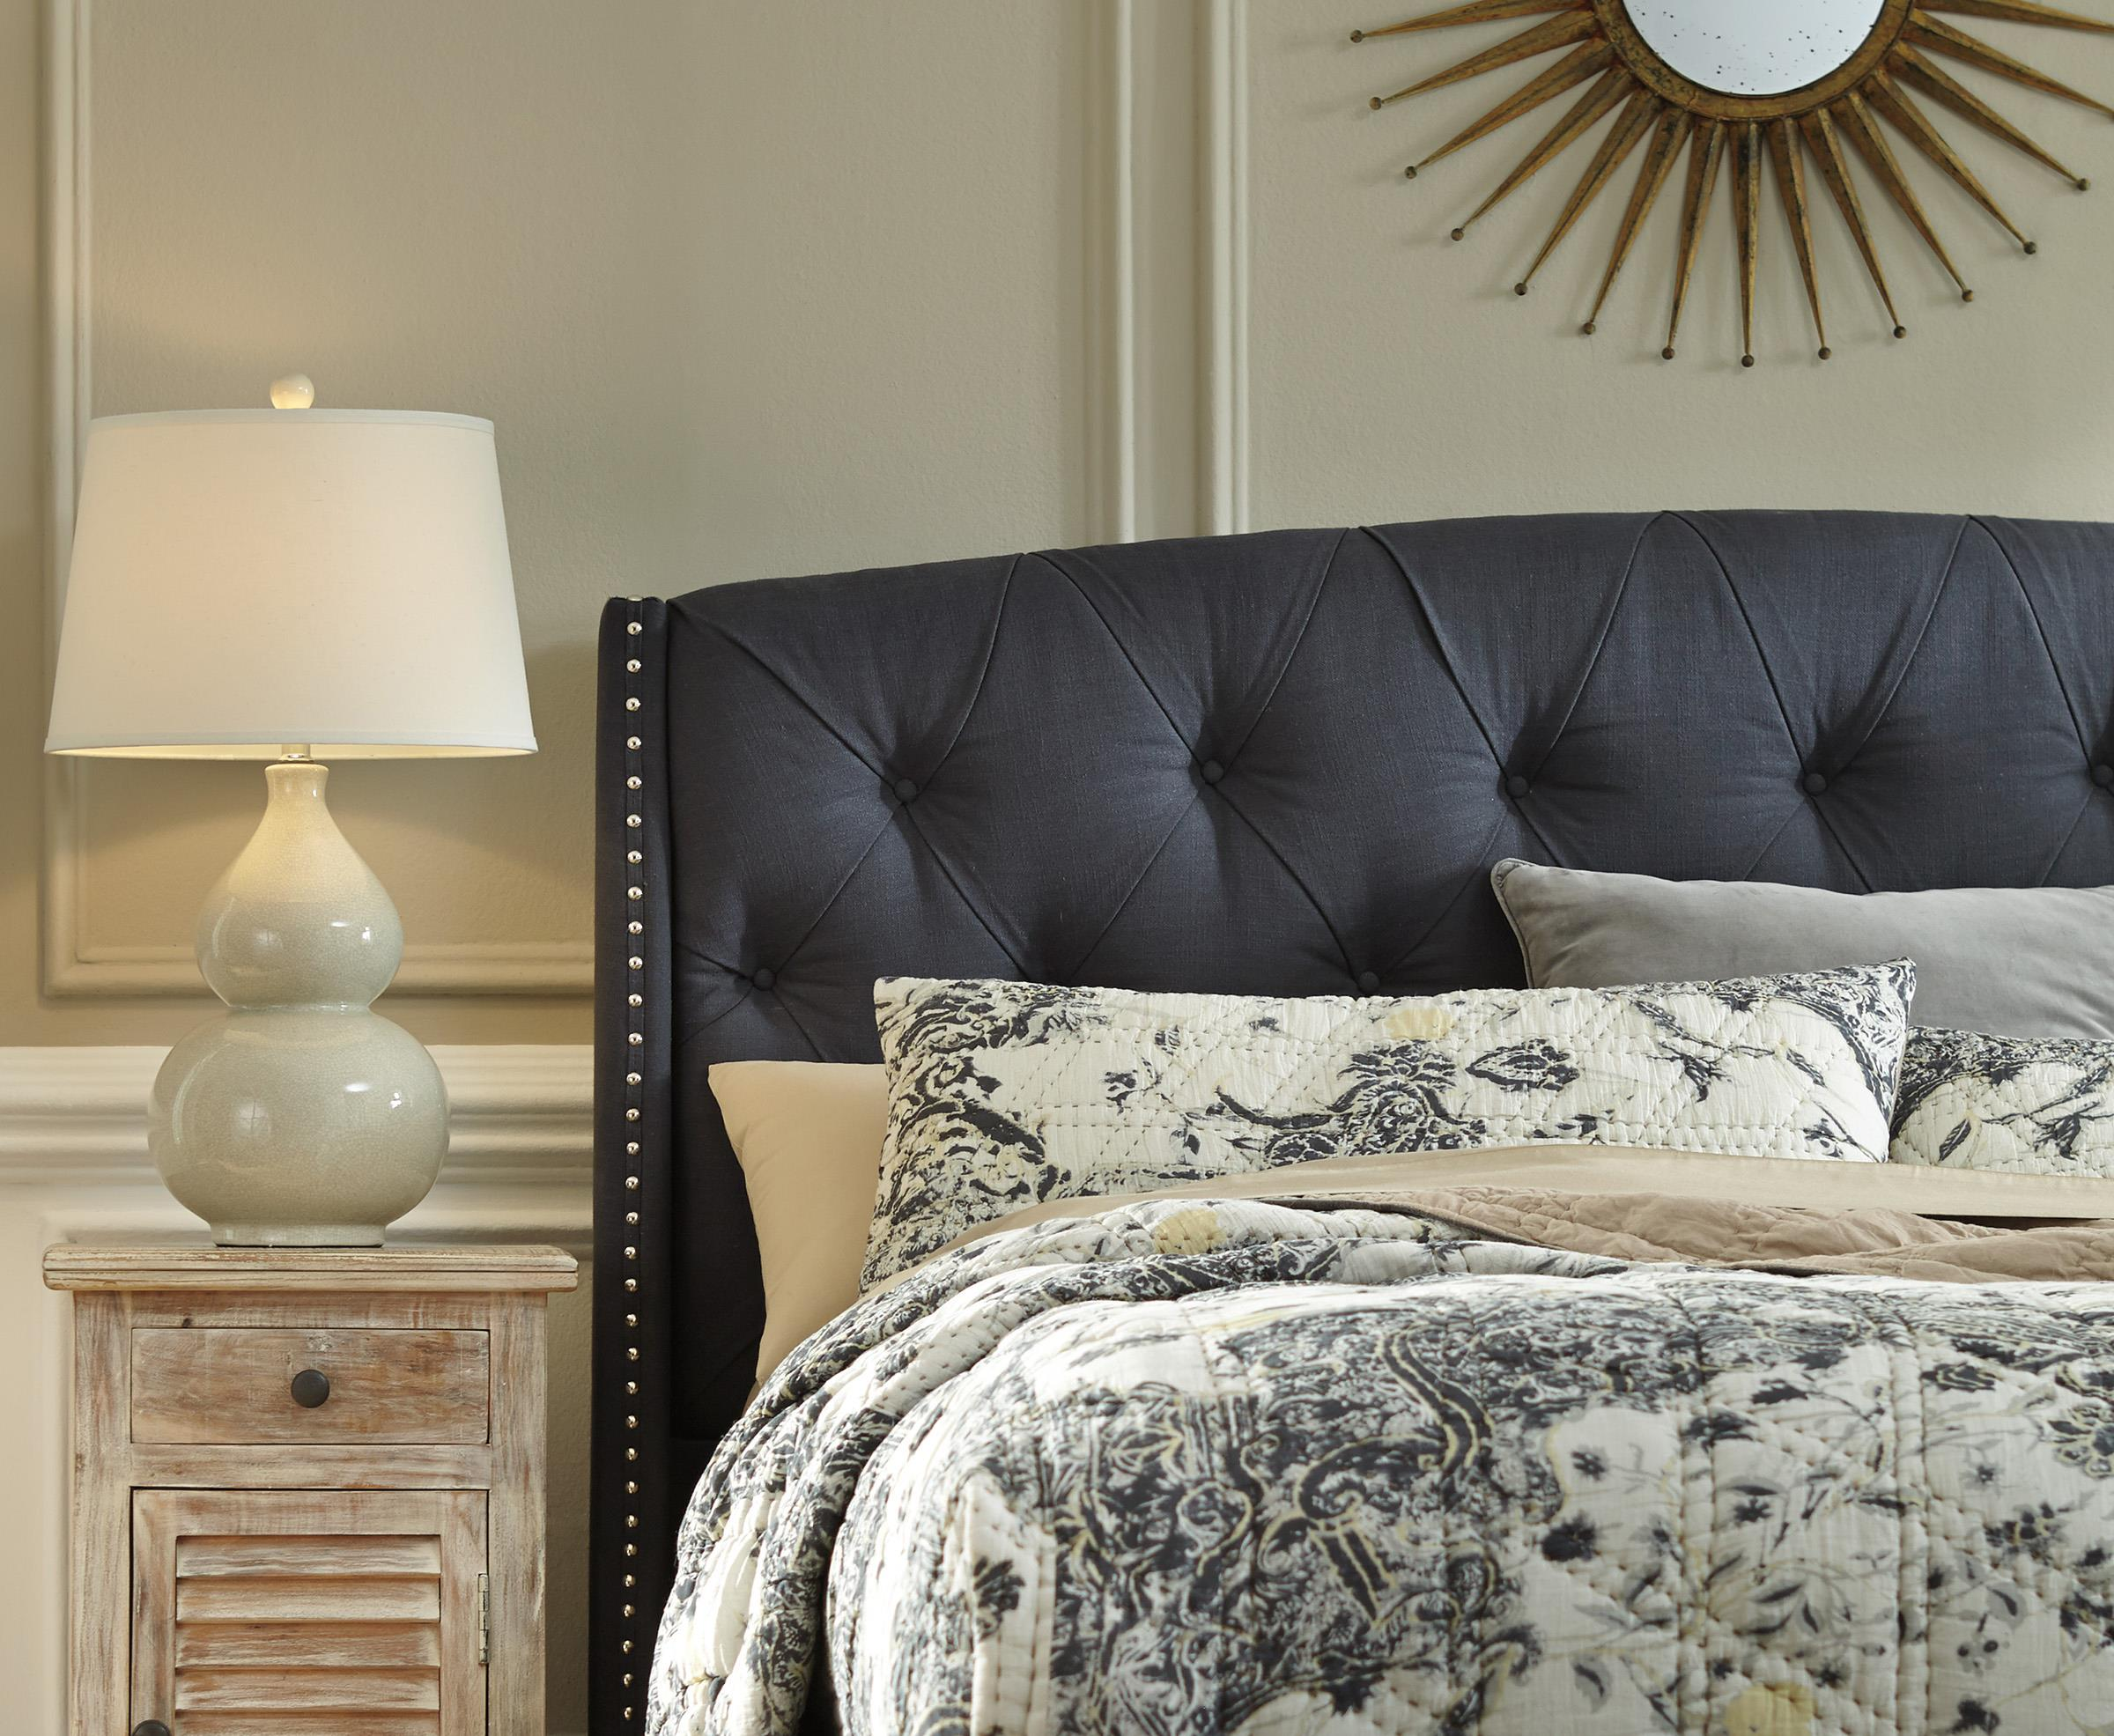 King california king upholstered headboard in dark gray California king headboard